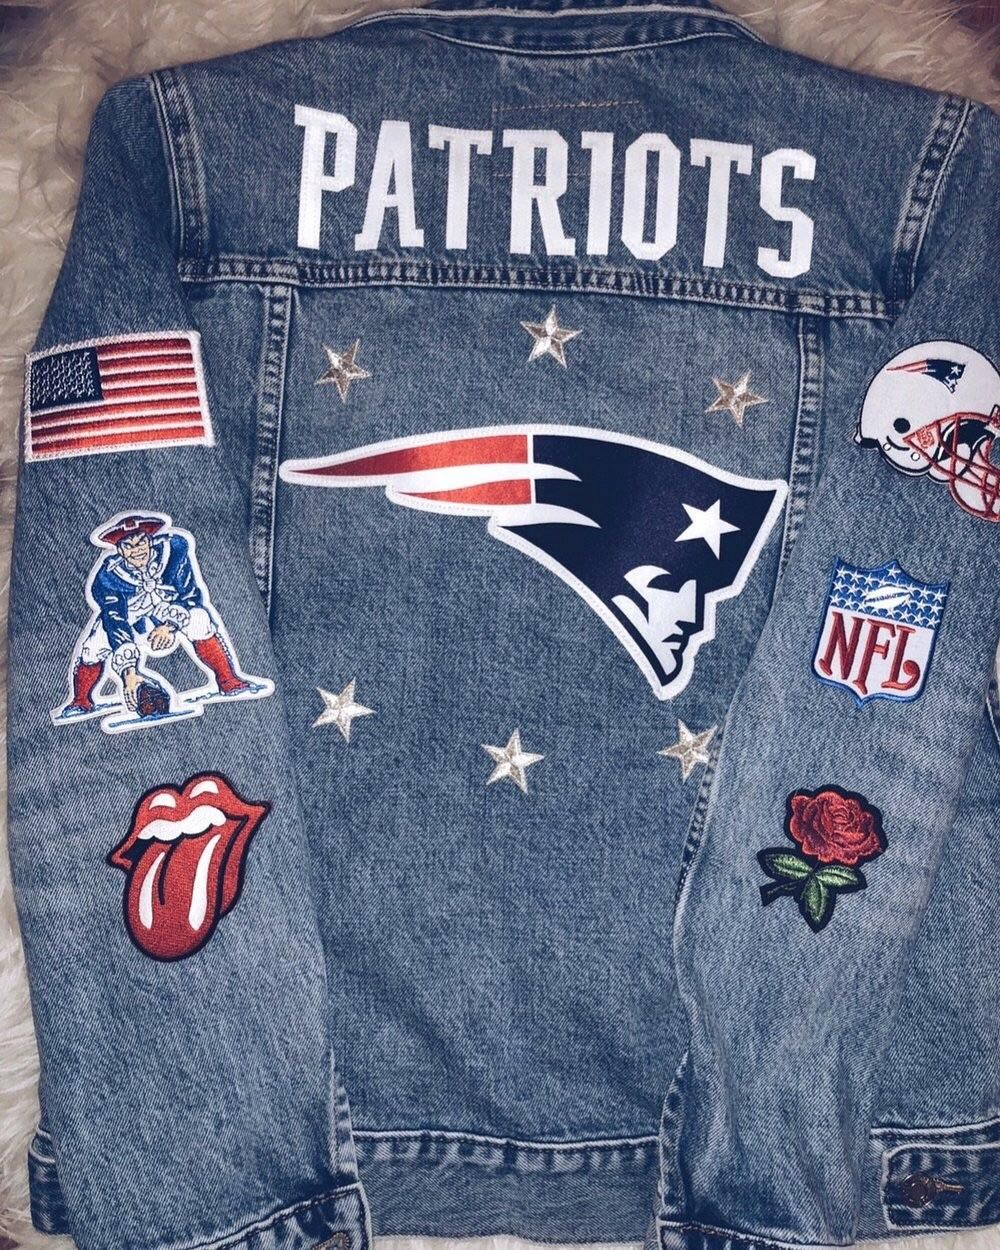 Planning on making this jean jacket. Should I paint the